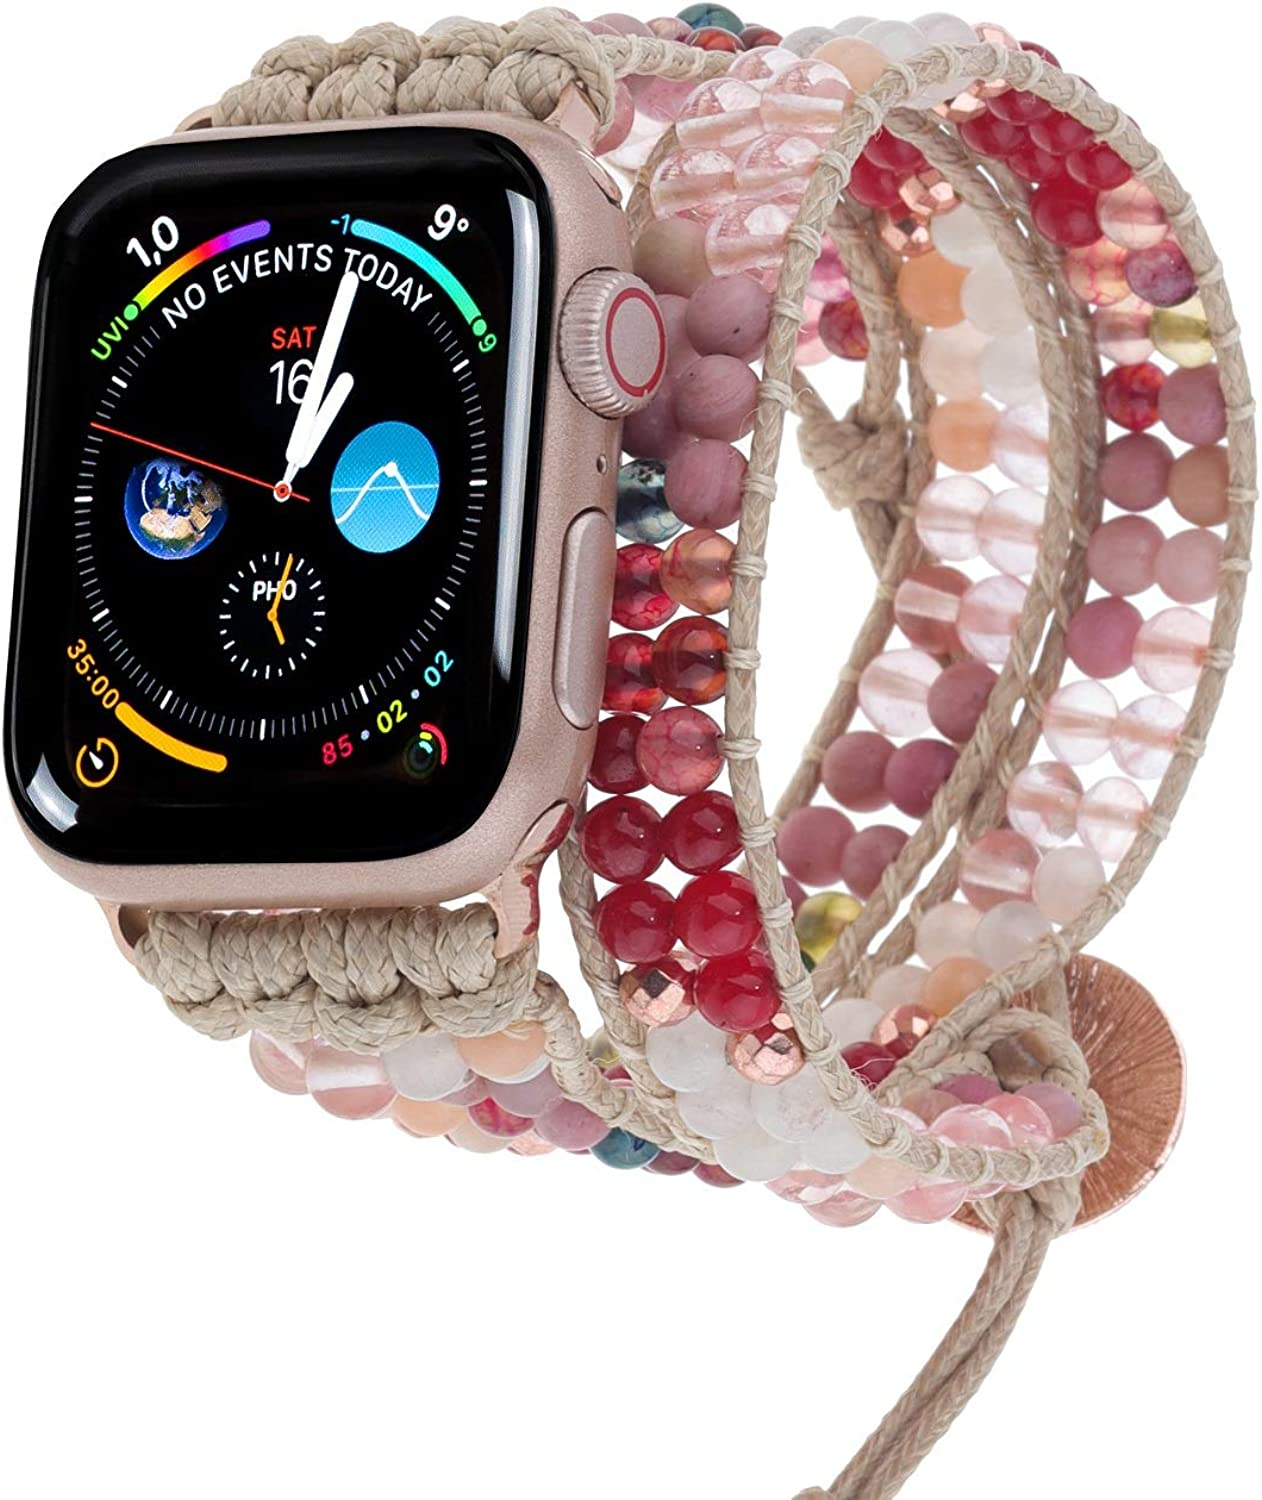 PLTGOOD 3 Wrap Watch Band Beads Bracelet Compatible with Apple 38mm/40mm, 42mm/44mm for Women Men, Replacement Watch Strap for Apple Iwatch SE Series 6/5/4/3/2/1